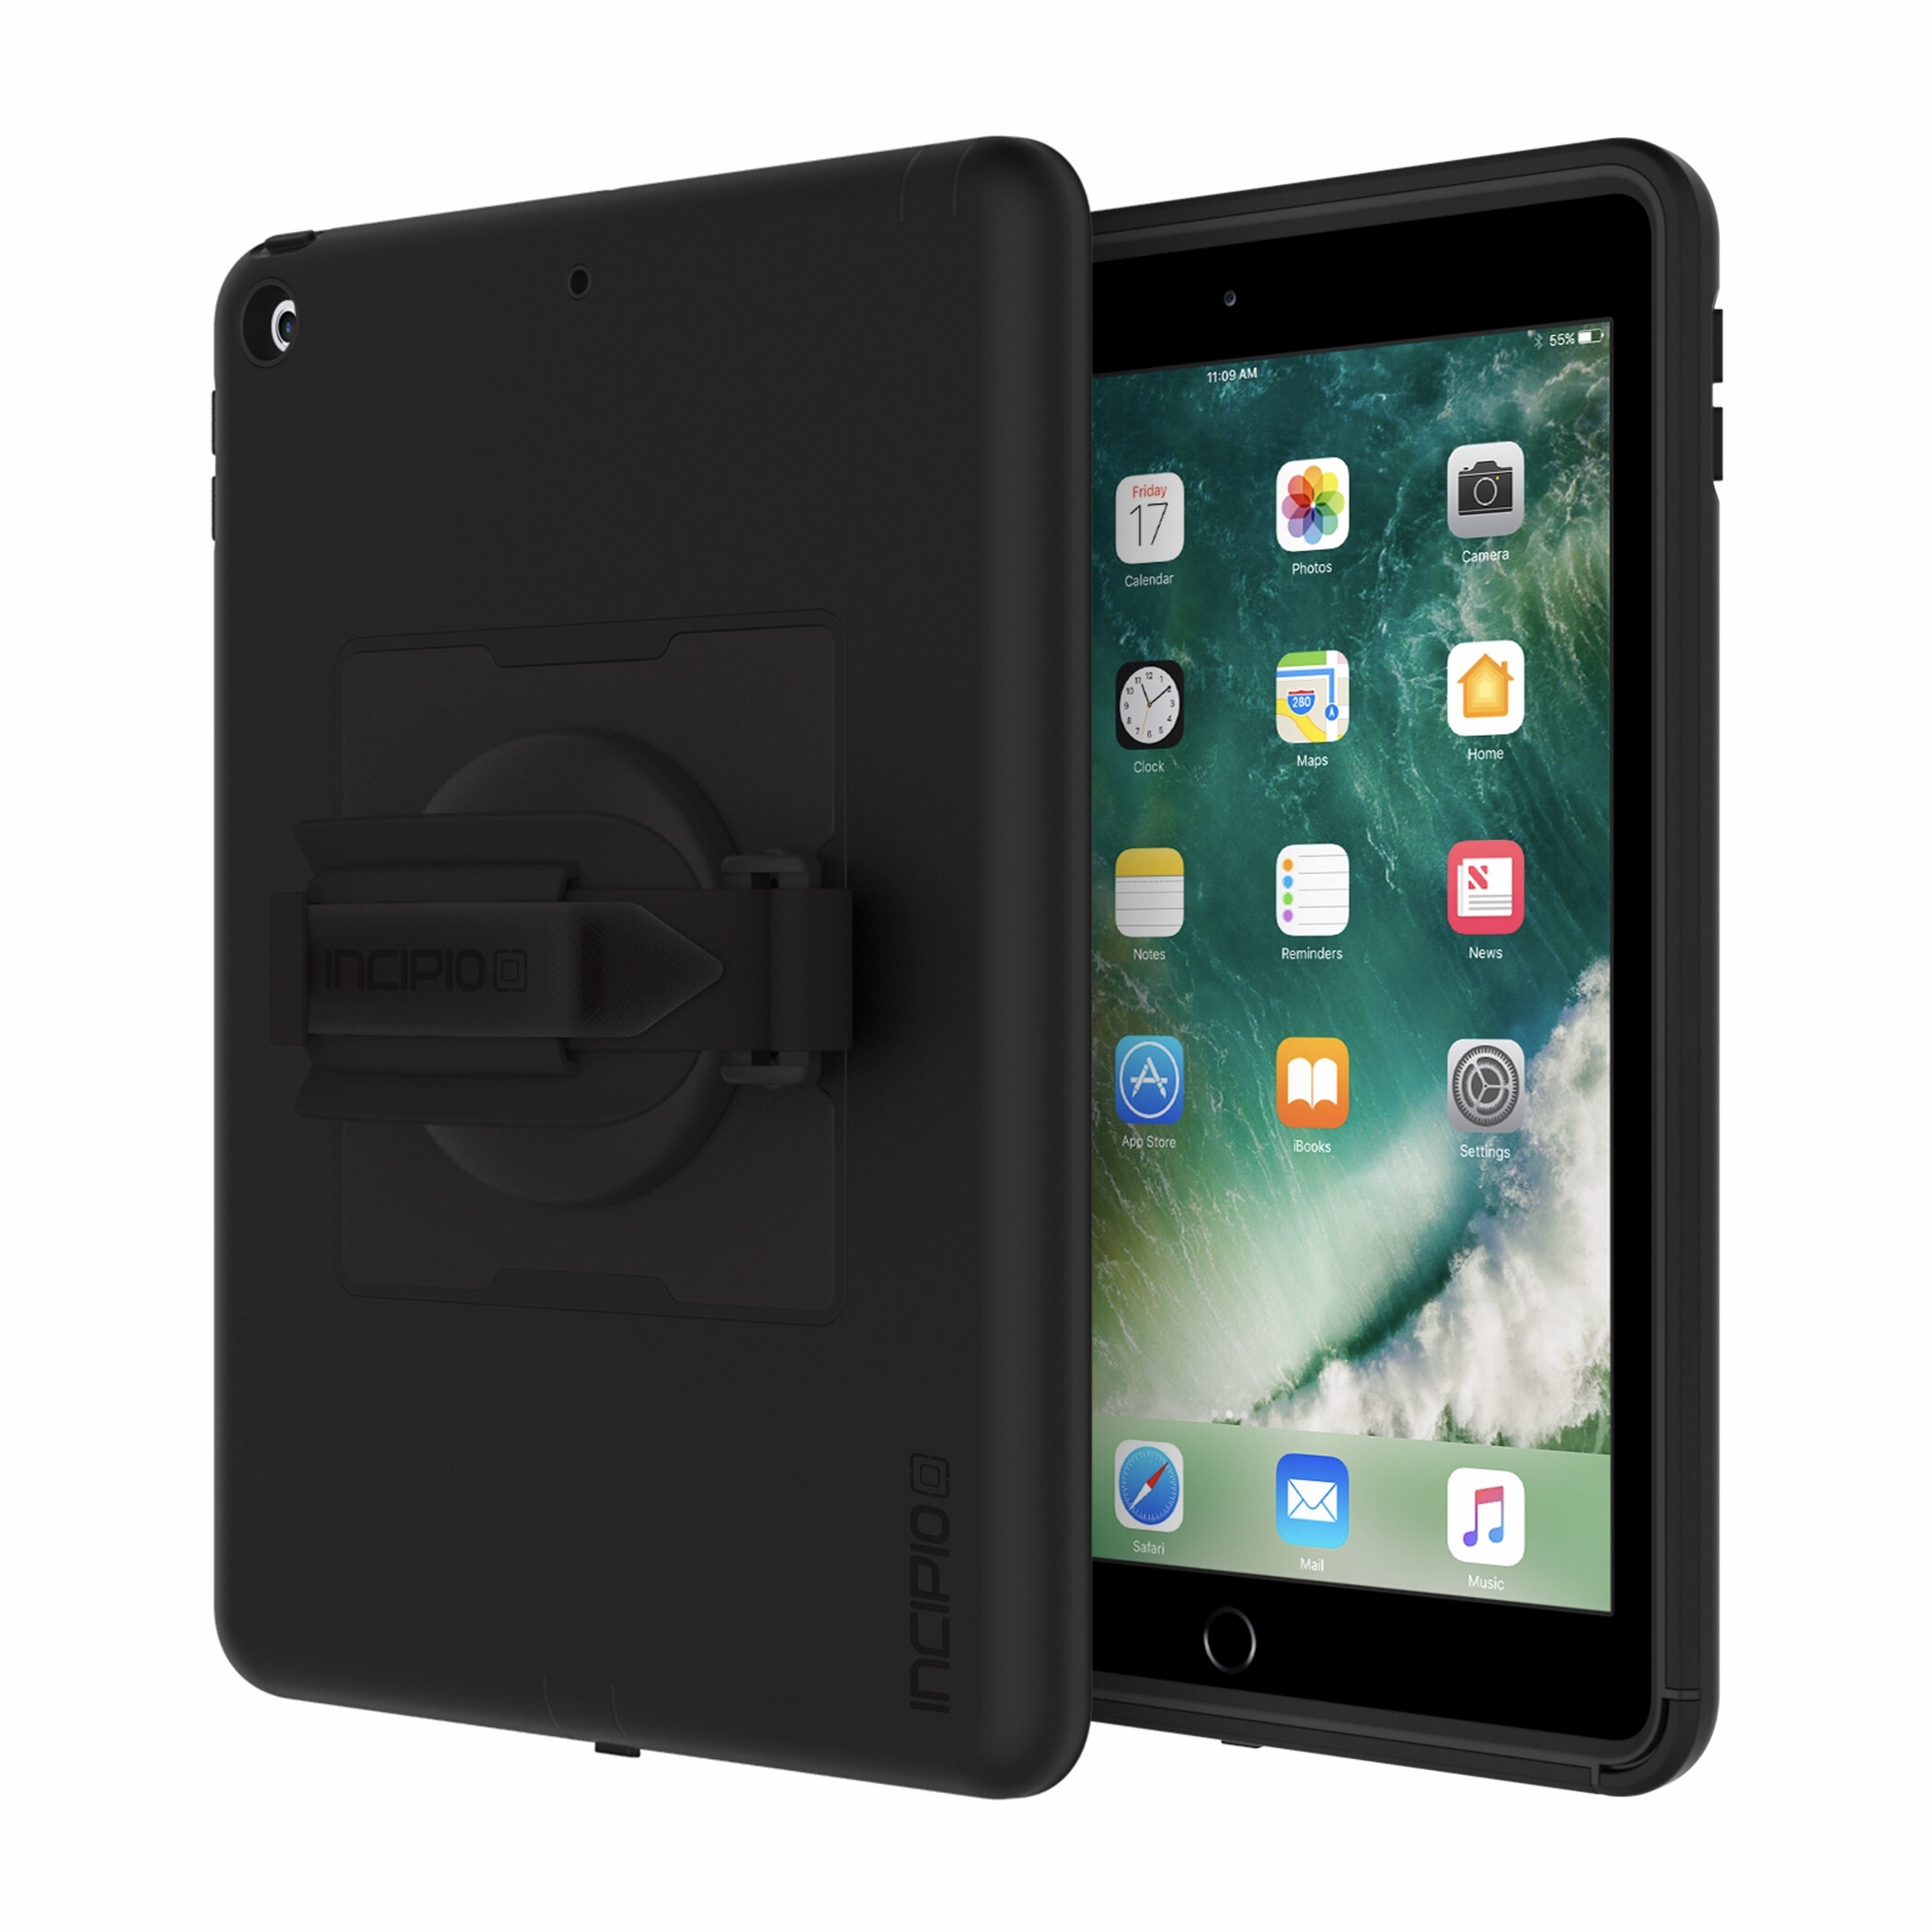 Coque renforcee Rotating 360 iPad 2017 9.7 pouces Harnais main integre